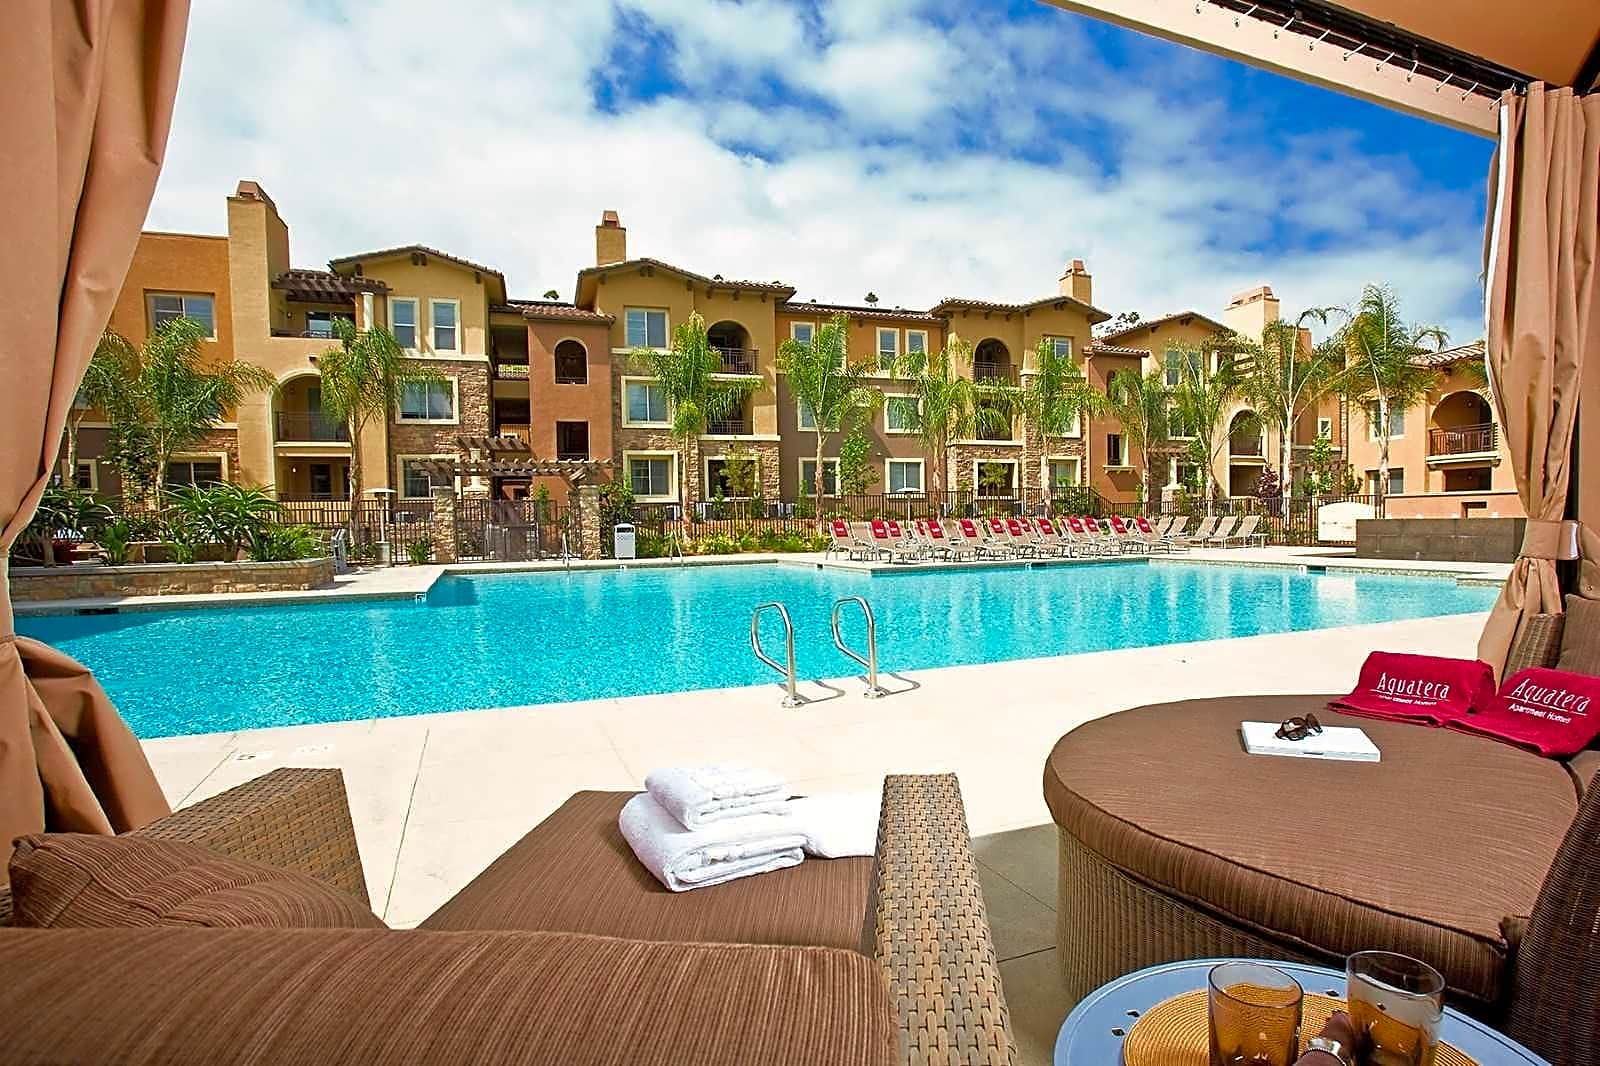 Private Poolside Cabanas